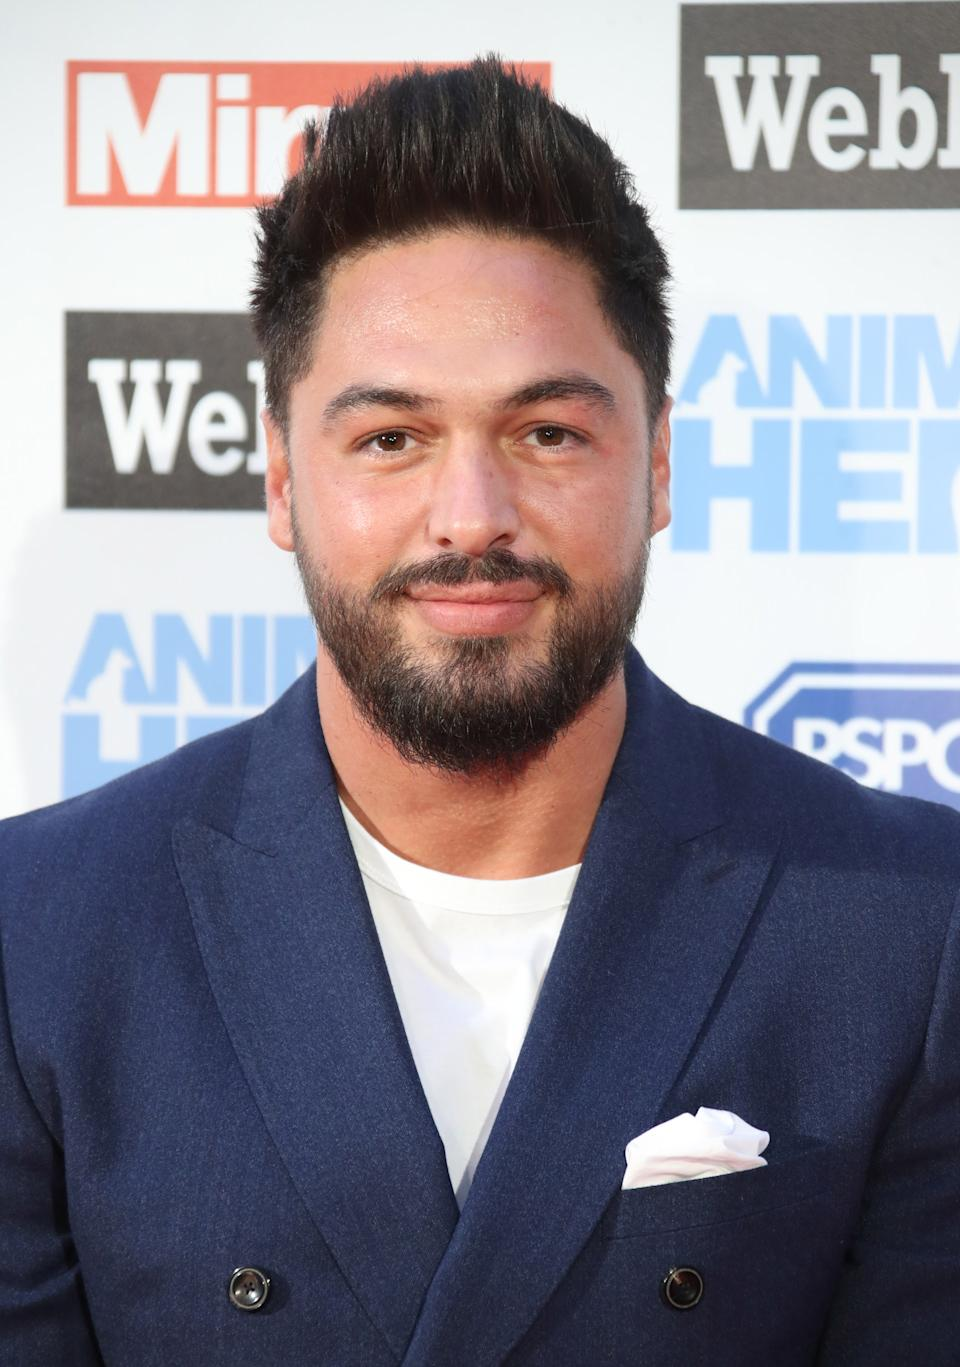 Mario Falcone attends the Daily Mirror & RSPCA Animal Hero awards at Grosvenor House on September 6, 2018 in London, England. (Photo by Mike Marsland/Mike Marsland/WireImage)